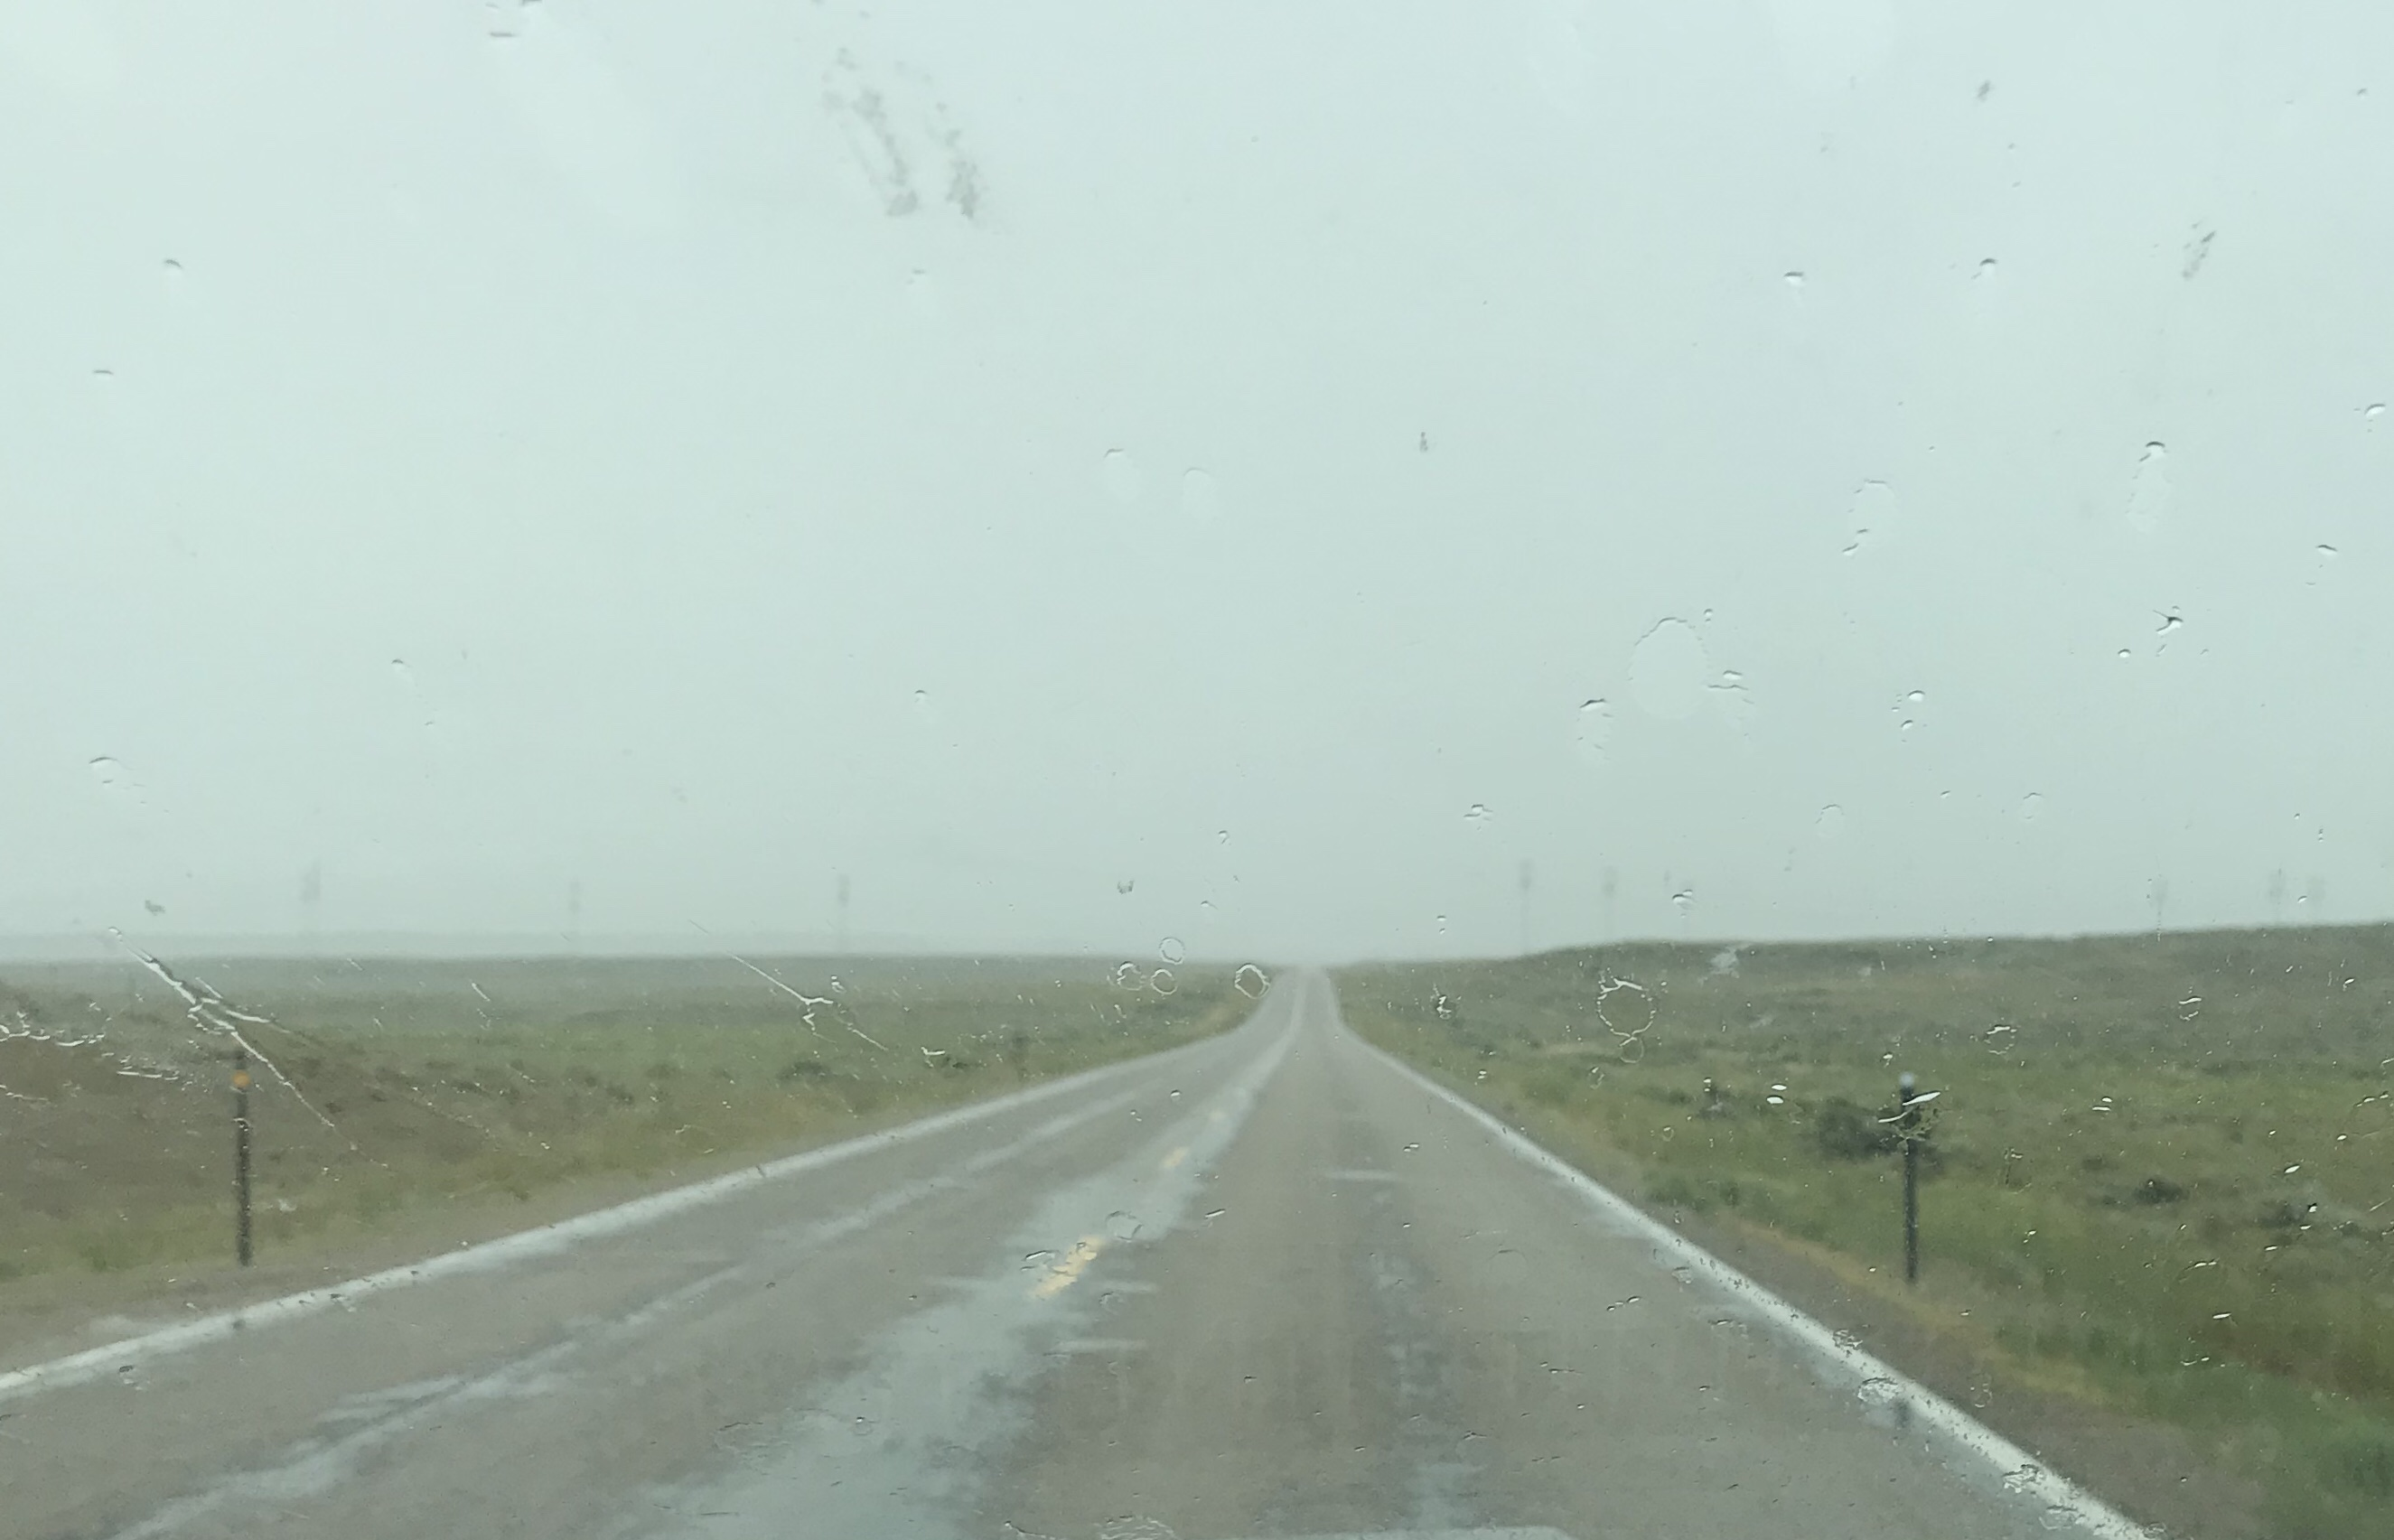 My drive from Jackson to Salt Lake City looked like this ALOT